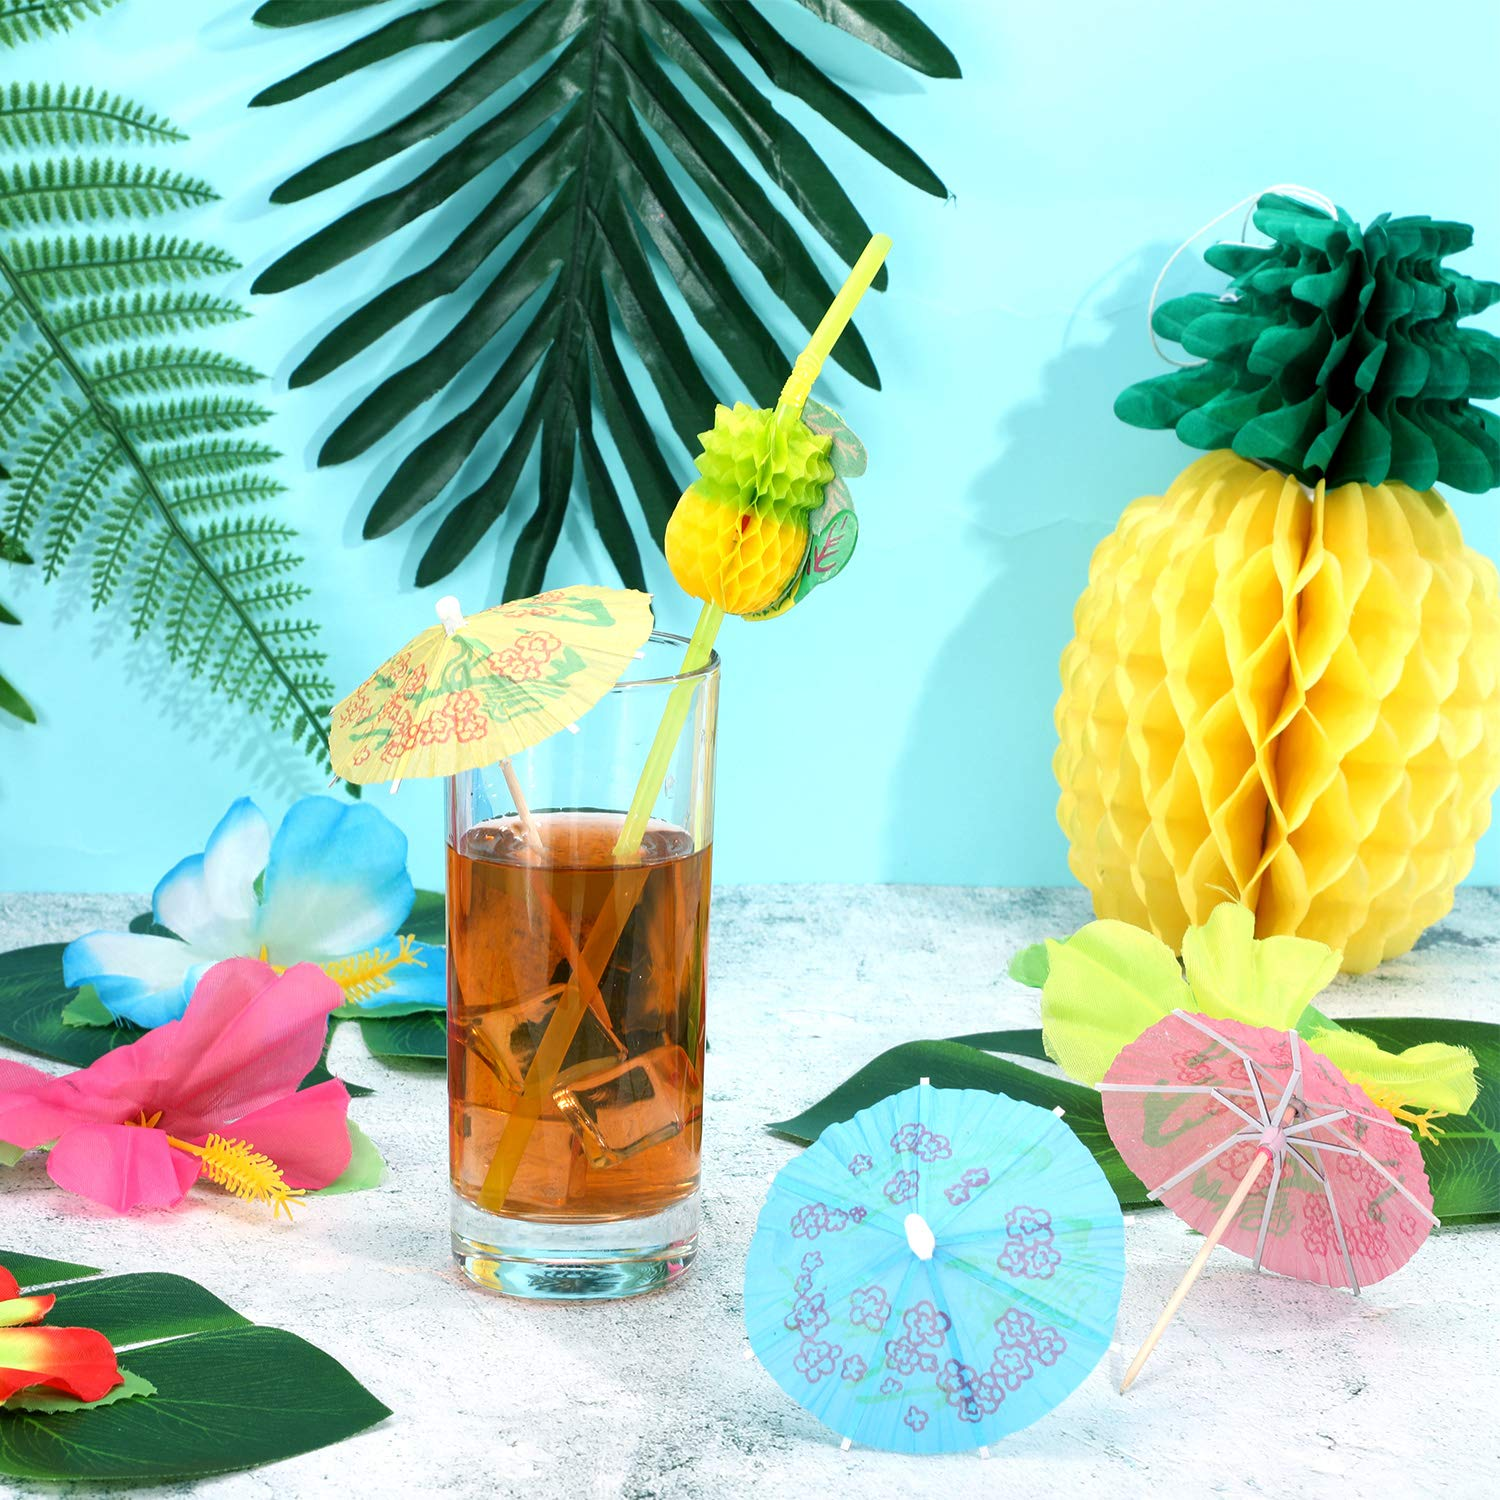 188 Pieces Hawaiian Luau Party Decorations,Include 30 Pieces Tropical Palm Leaves, 30 Pieces Hibiscus Flowers, 4 Pieces Paper Pineapples, 24 Pieces Cupcake Toppers, 50 Pieces 3D Fruit Straws, 50 Pieces Paper Umbrella by Zonon (Image #2)